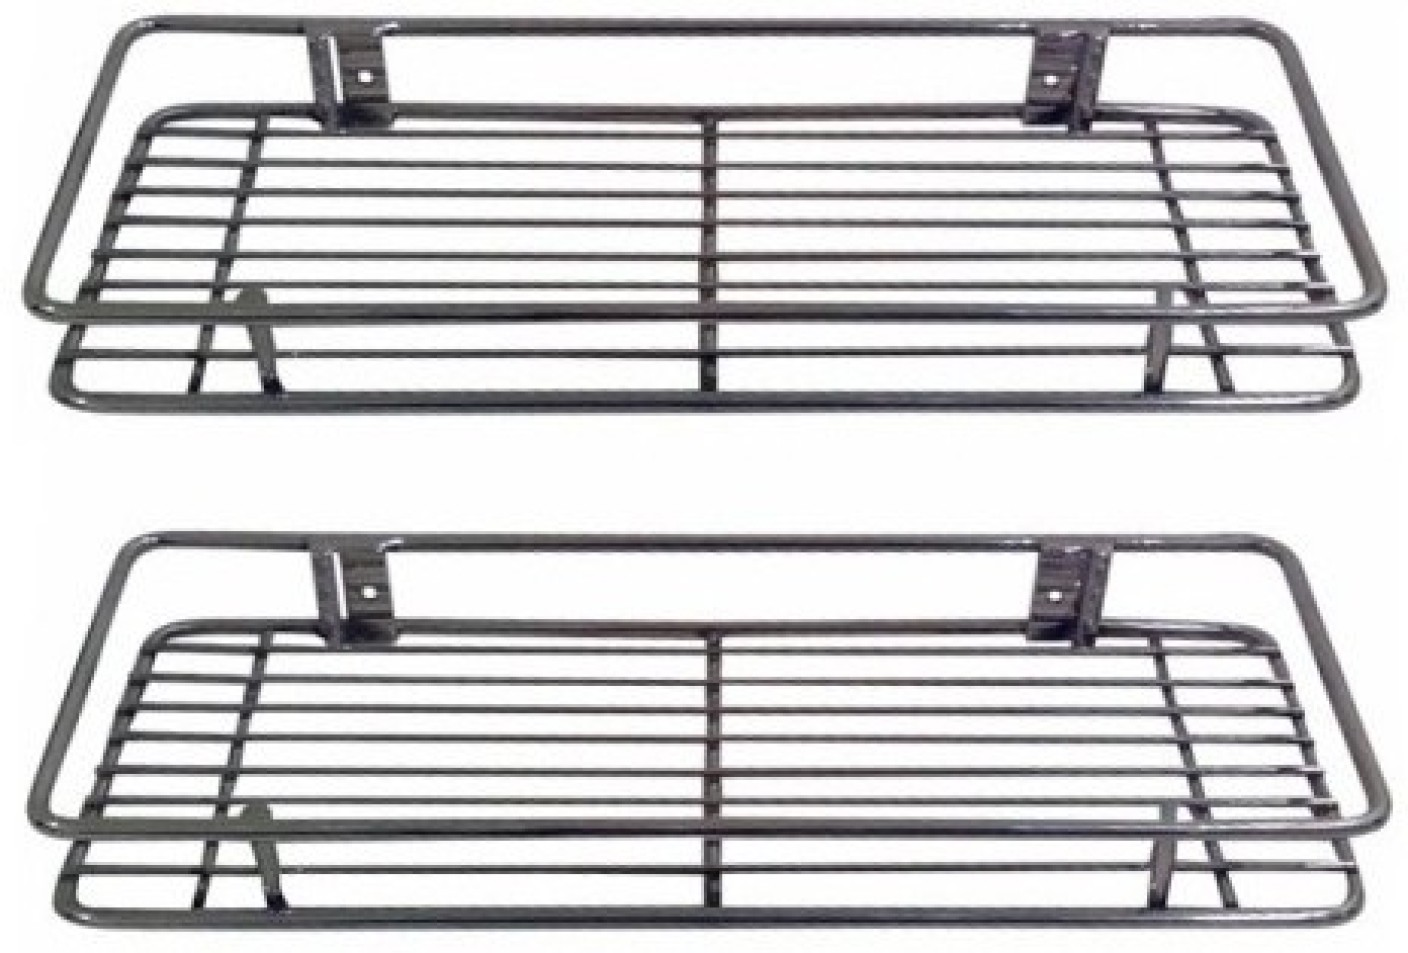 Sgb Stainless Steel Kitchen Rack Price In India Buy Sgb